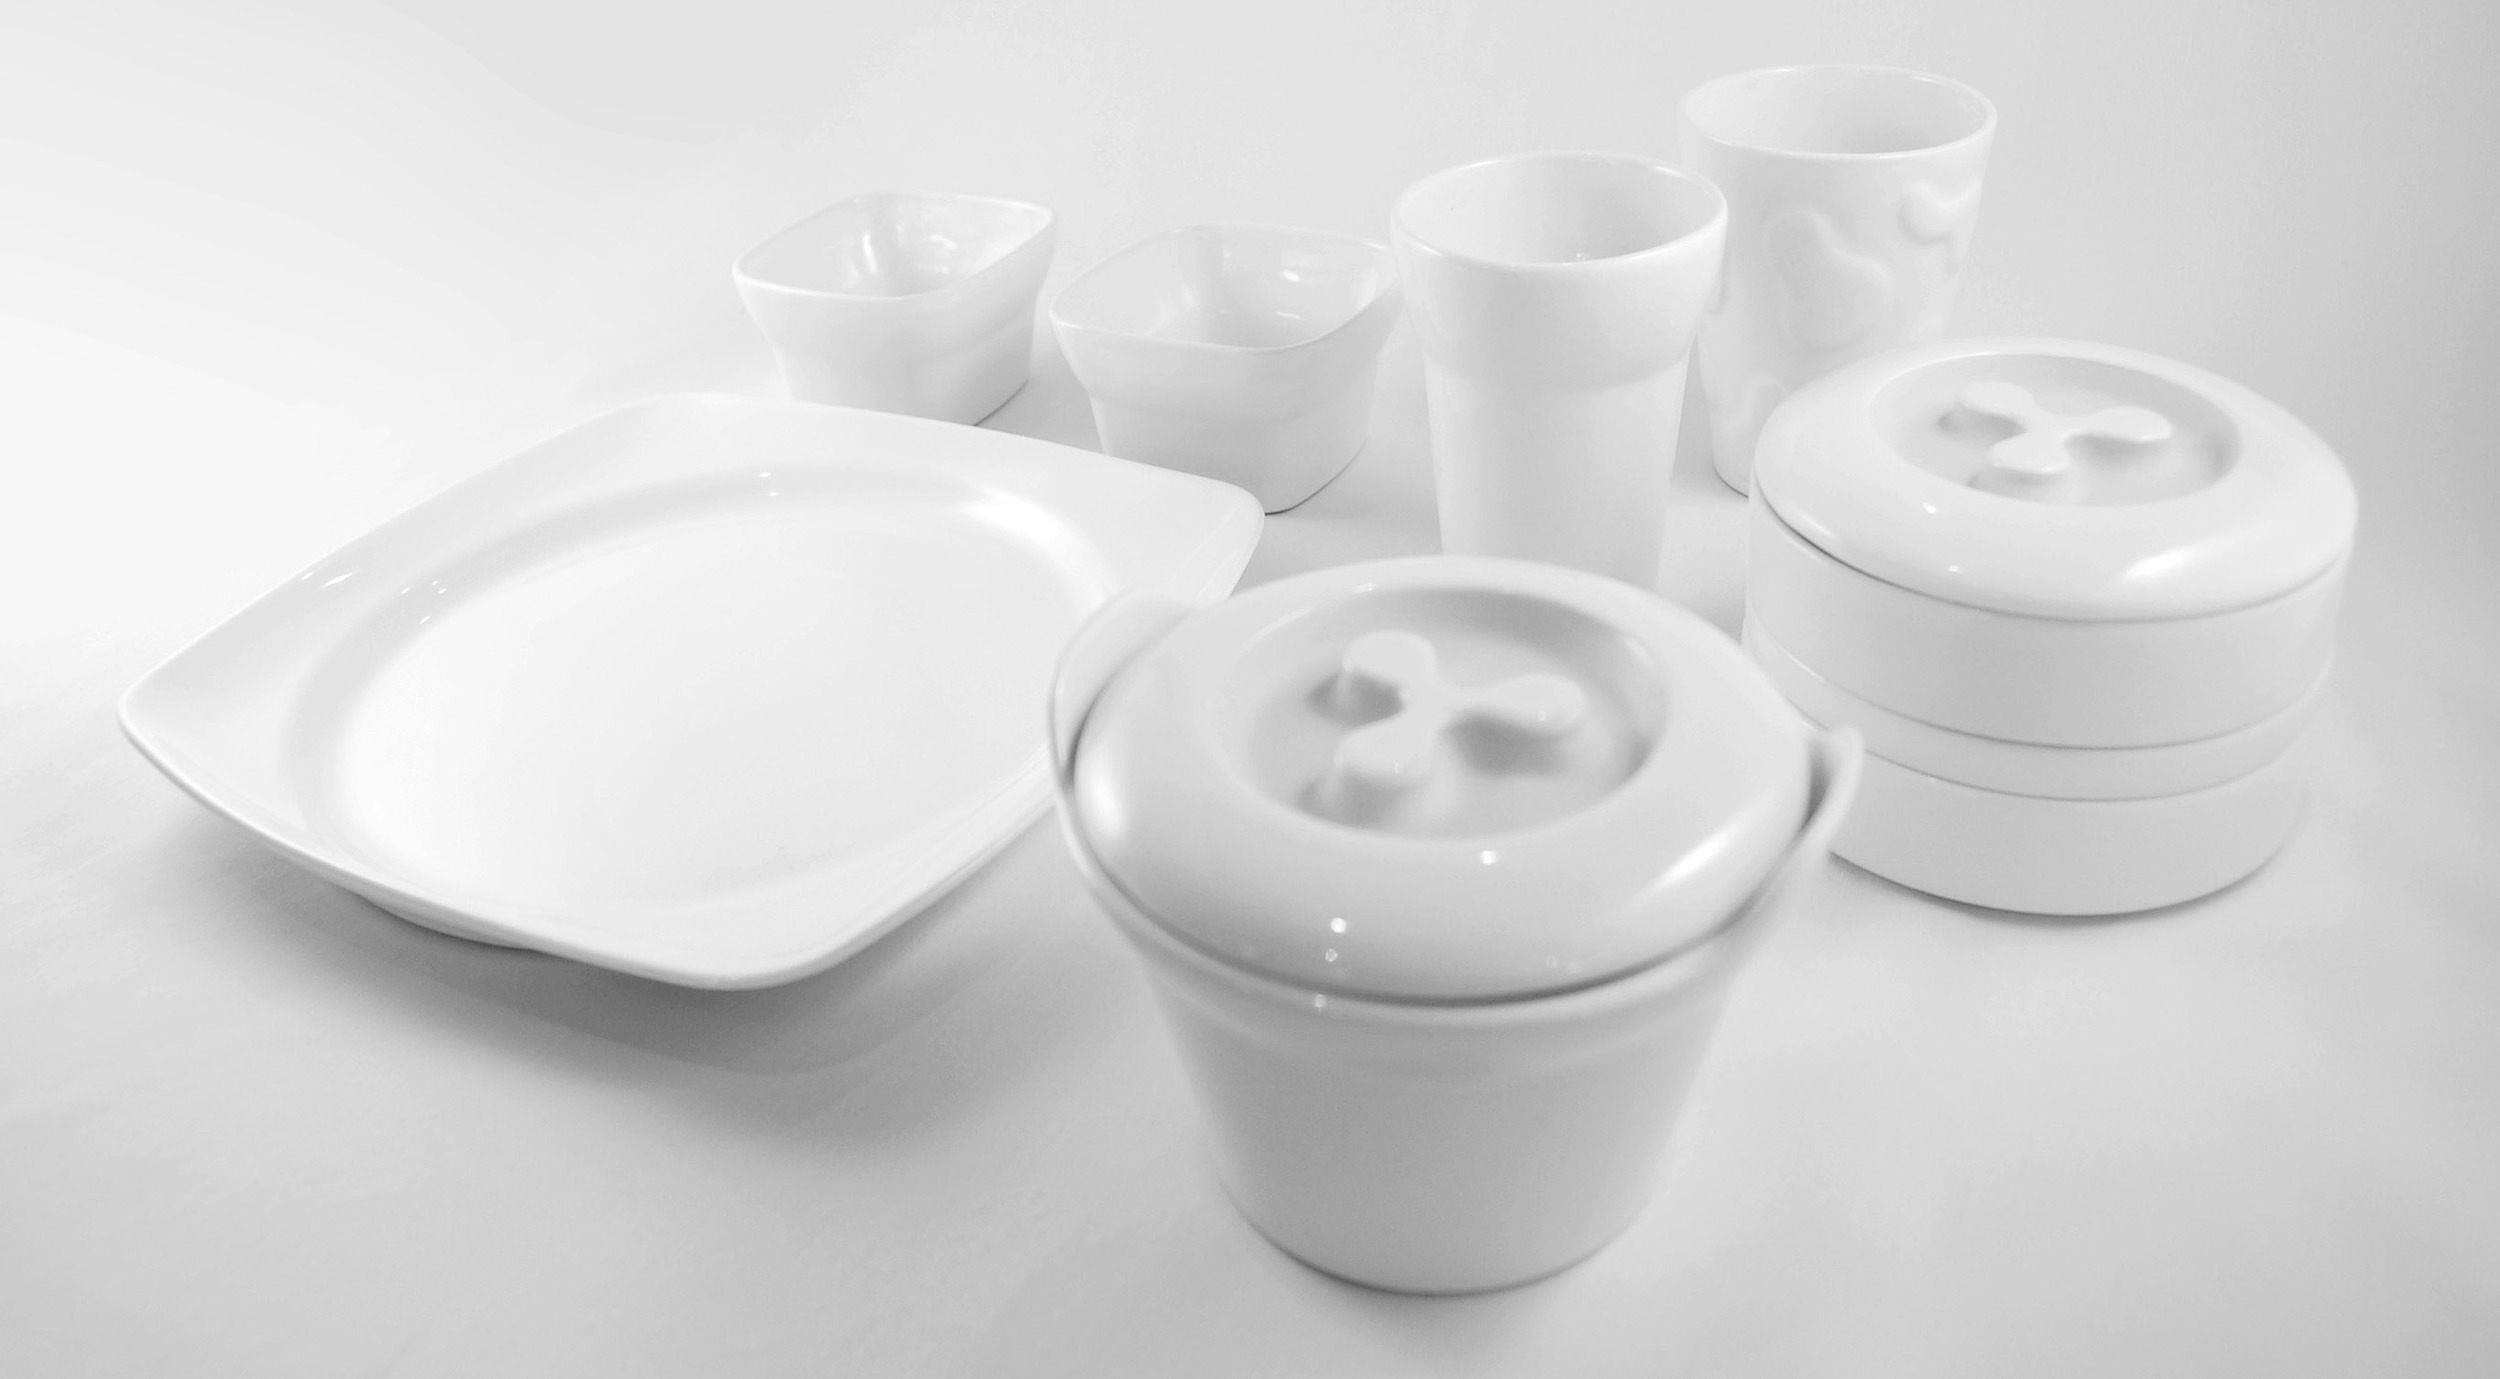 Réconfort hospital tableware collection